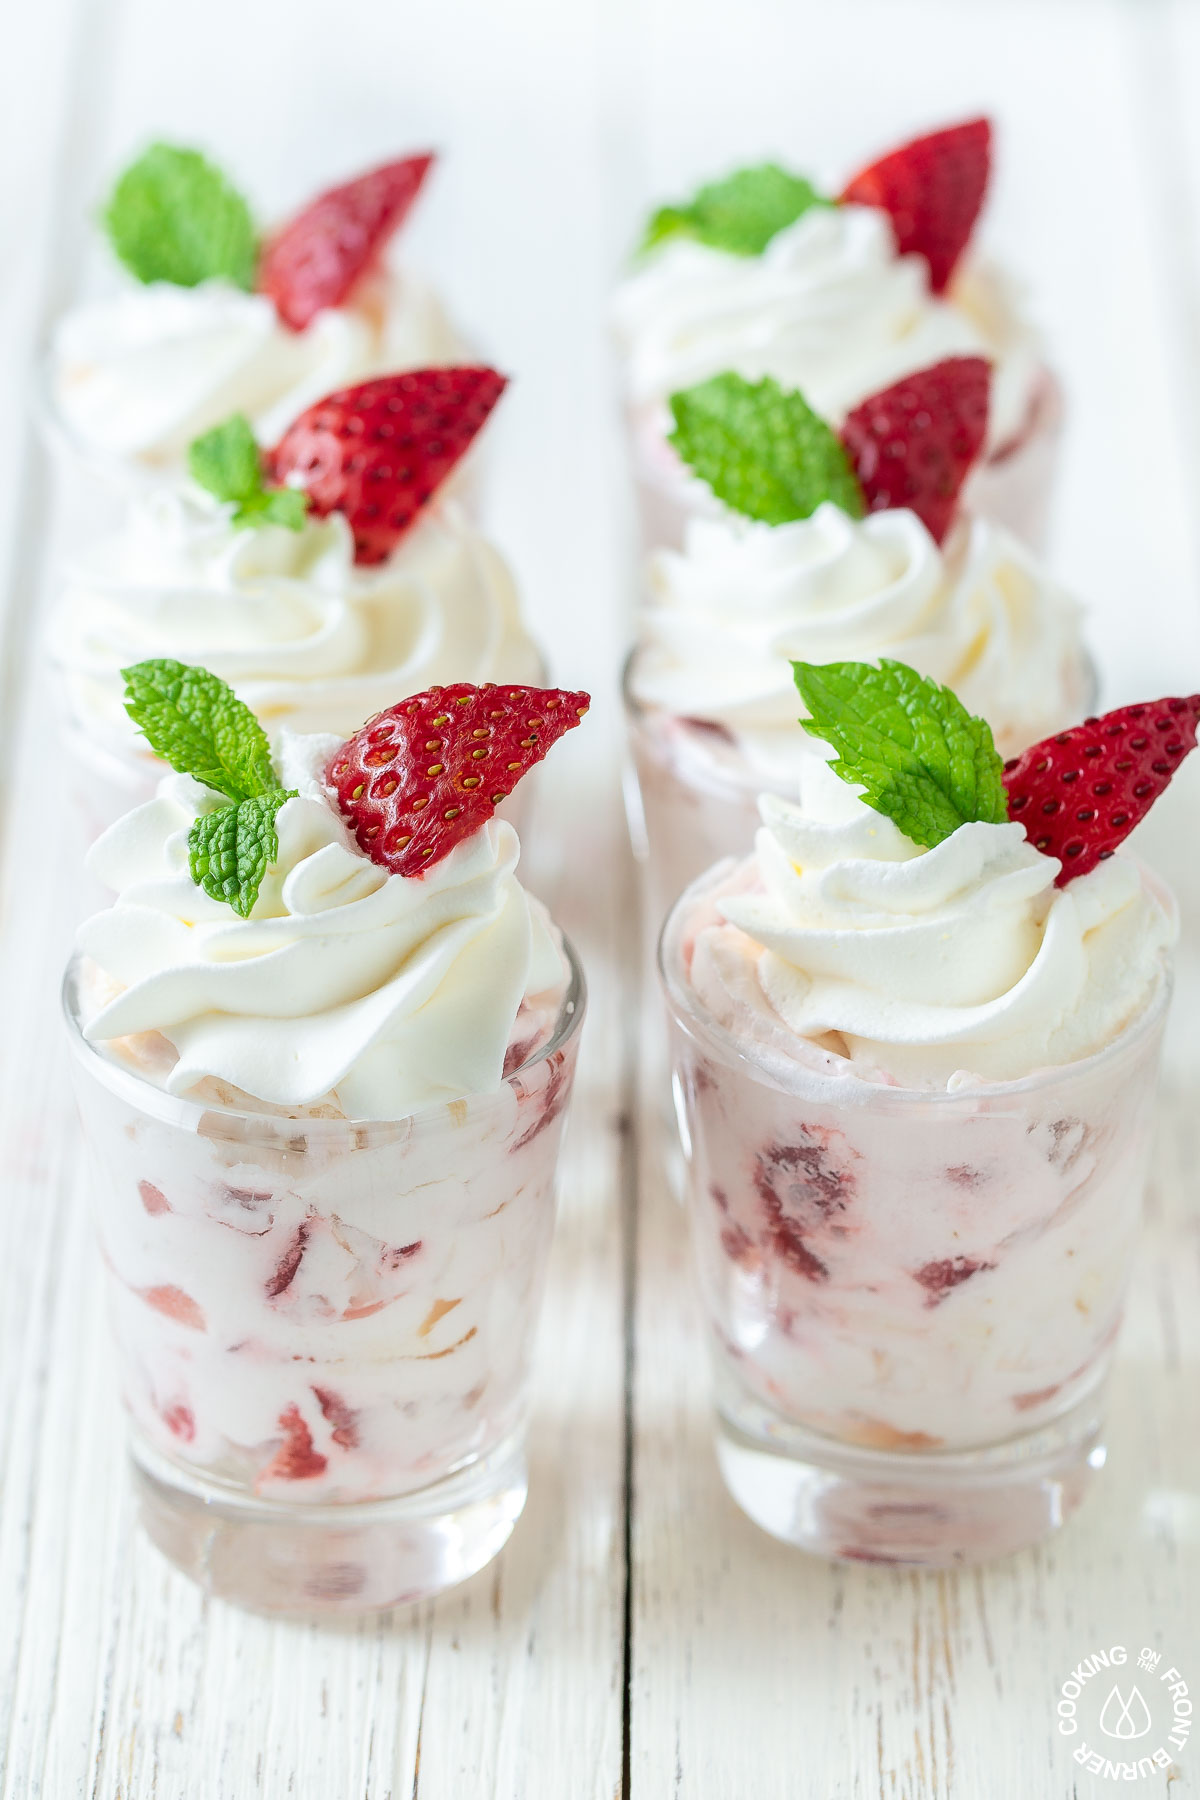 6 small shot glasses filled with strawberry filling and topped with cool whip and a mint leaf